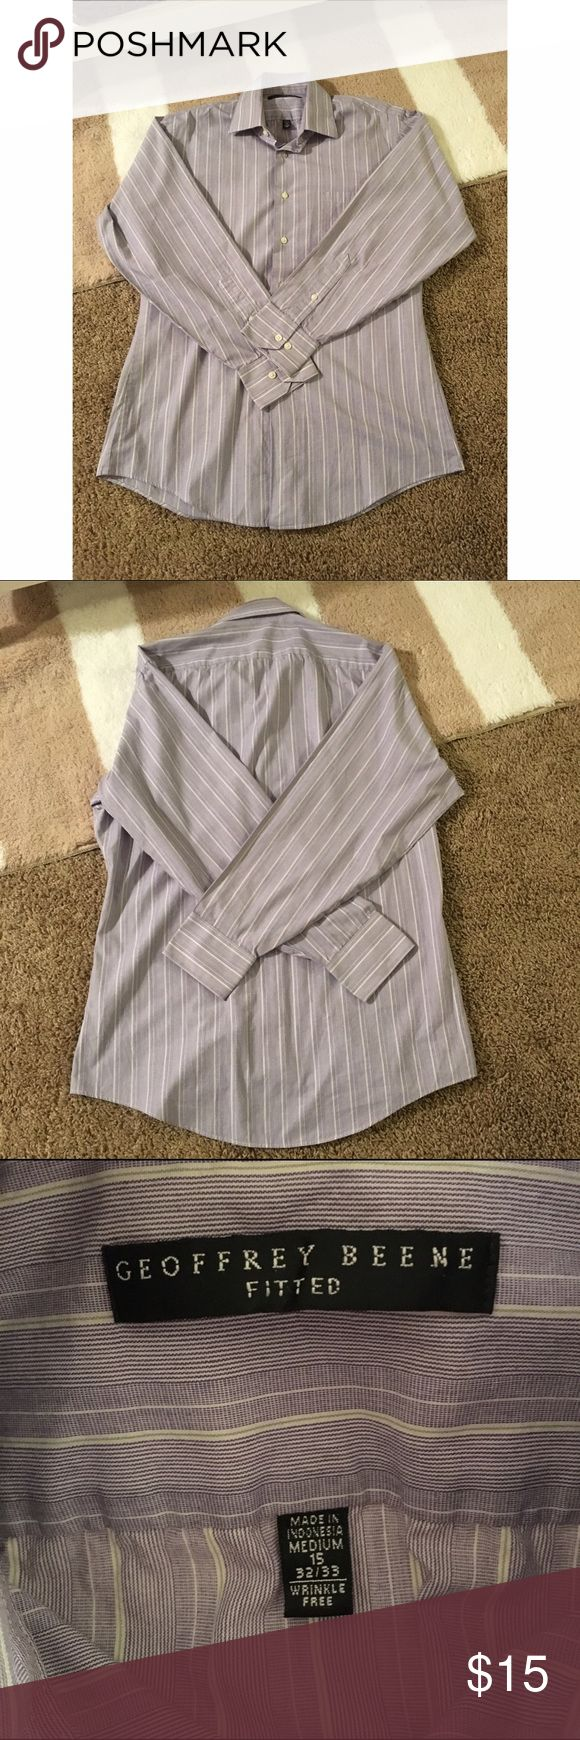 Men's Geoffrey Beene fitted button up Size is medium. Shirt is in excellent used condition! Fitted style. It is a light light purple with faint white stripes. Geoffrey Beene Shirts Dress Shirts